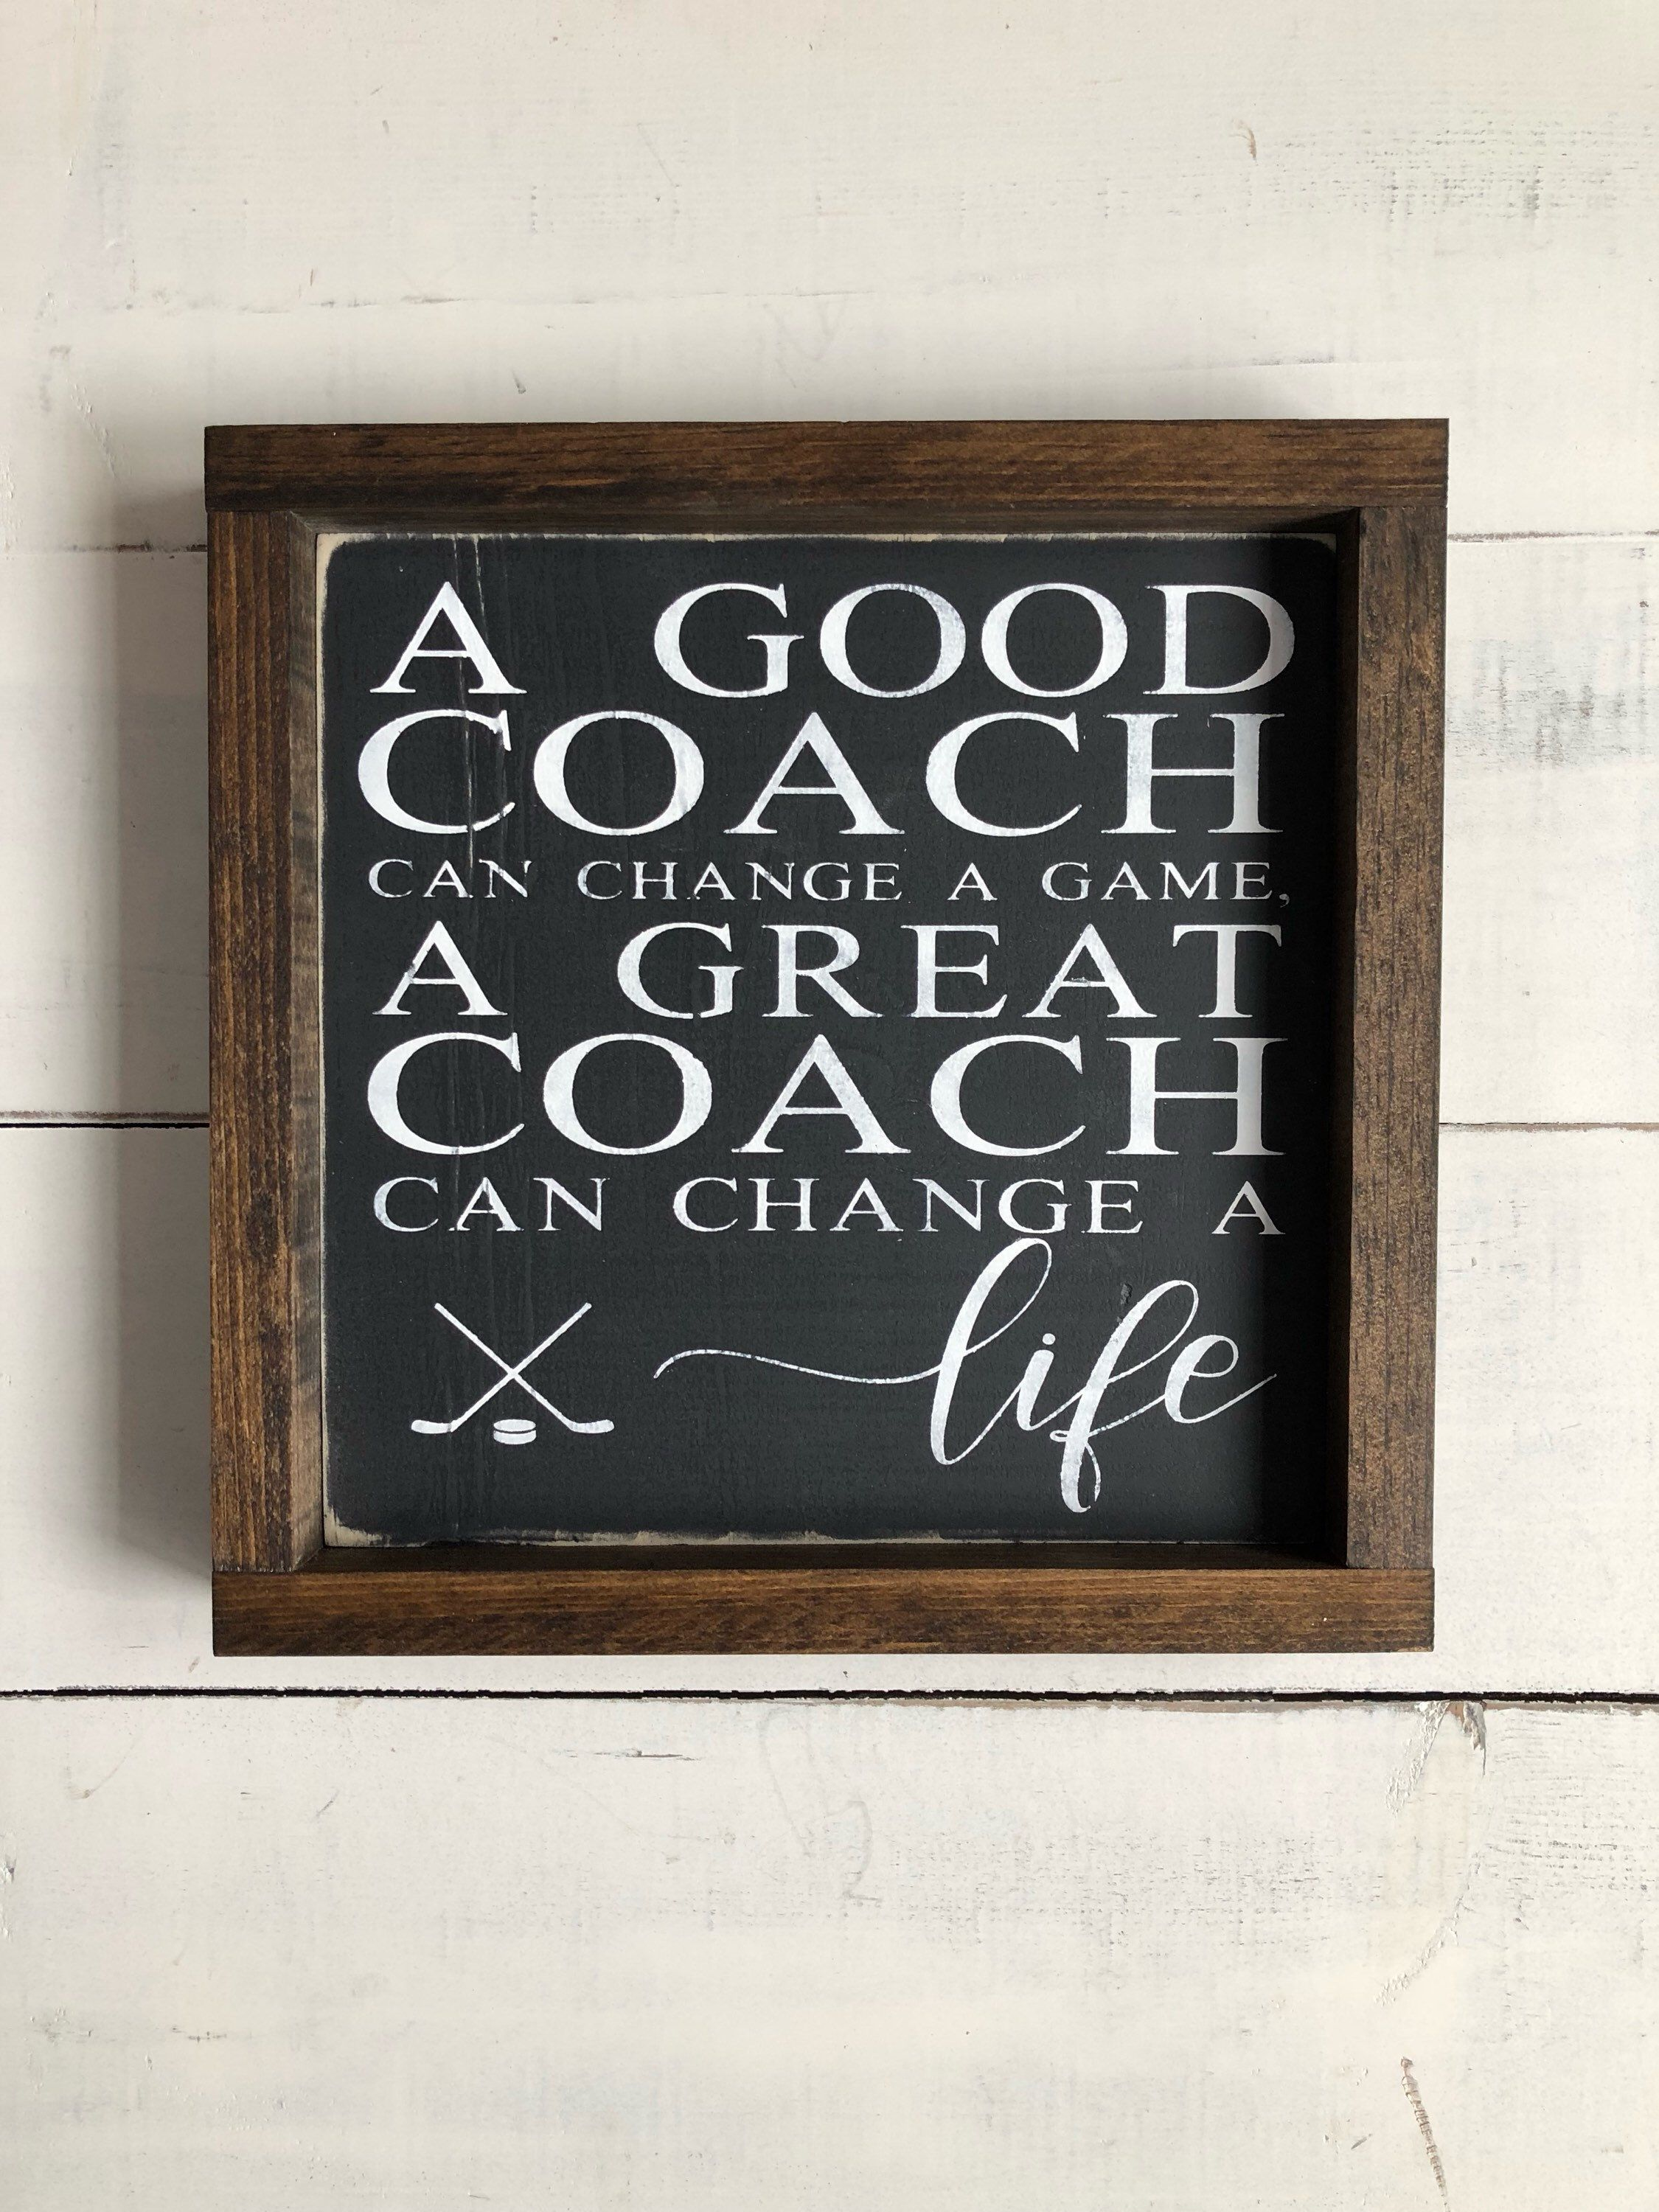 Coach Wood Sign Coach Gift Idea Hockey Coach Gifts Hockey Coach Coach Gifts